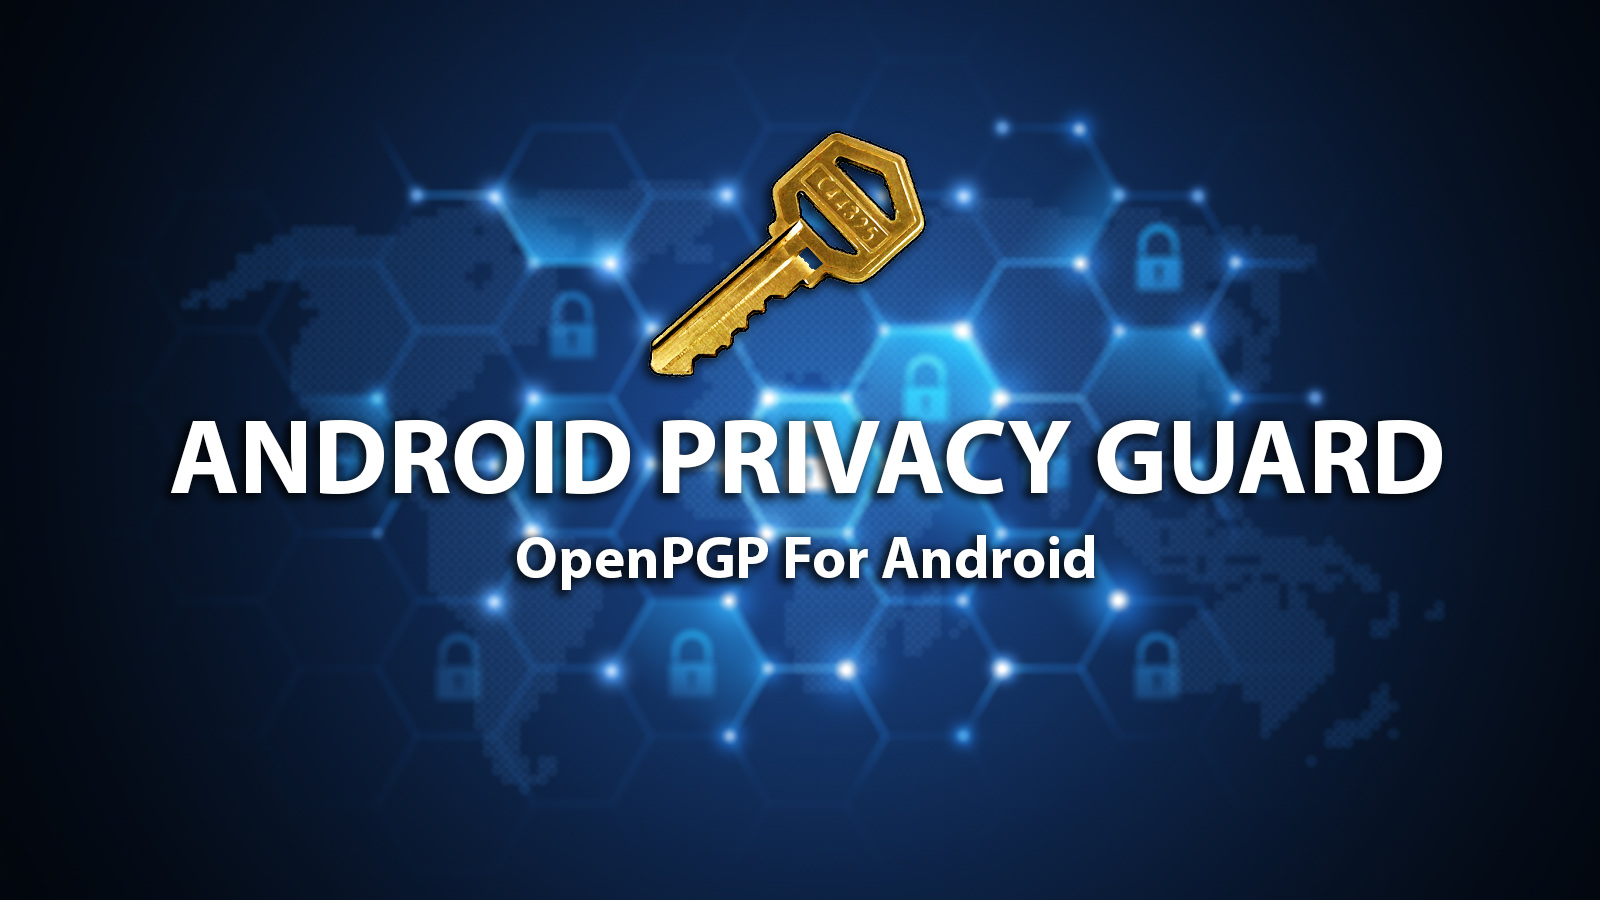 Android Privacy Guard - OpenPGP For Android